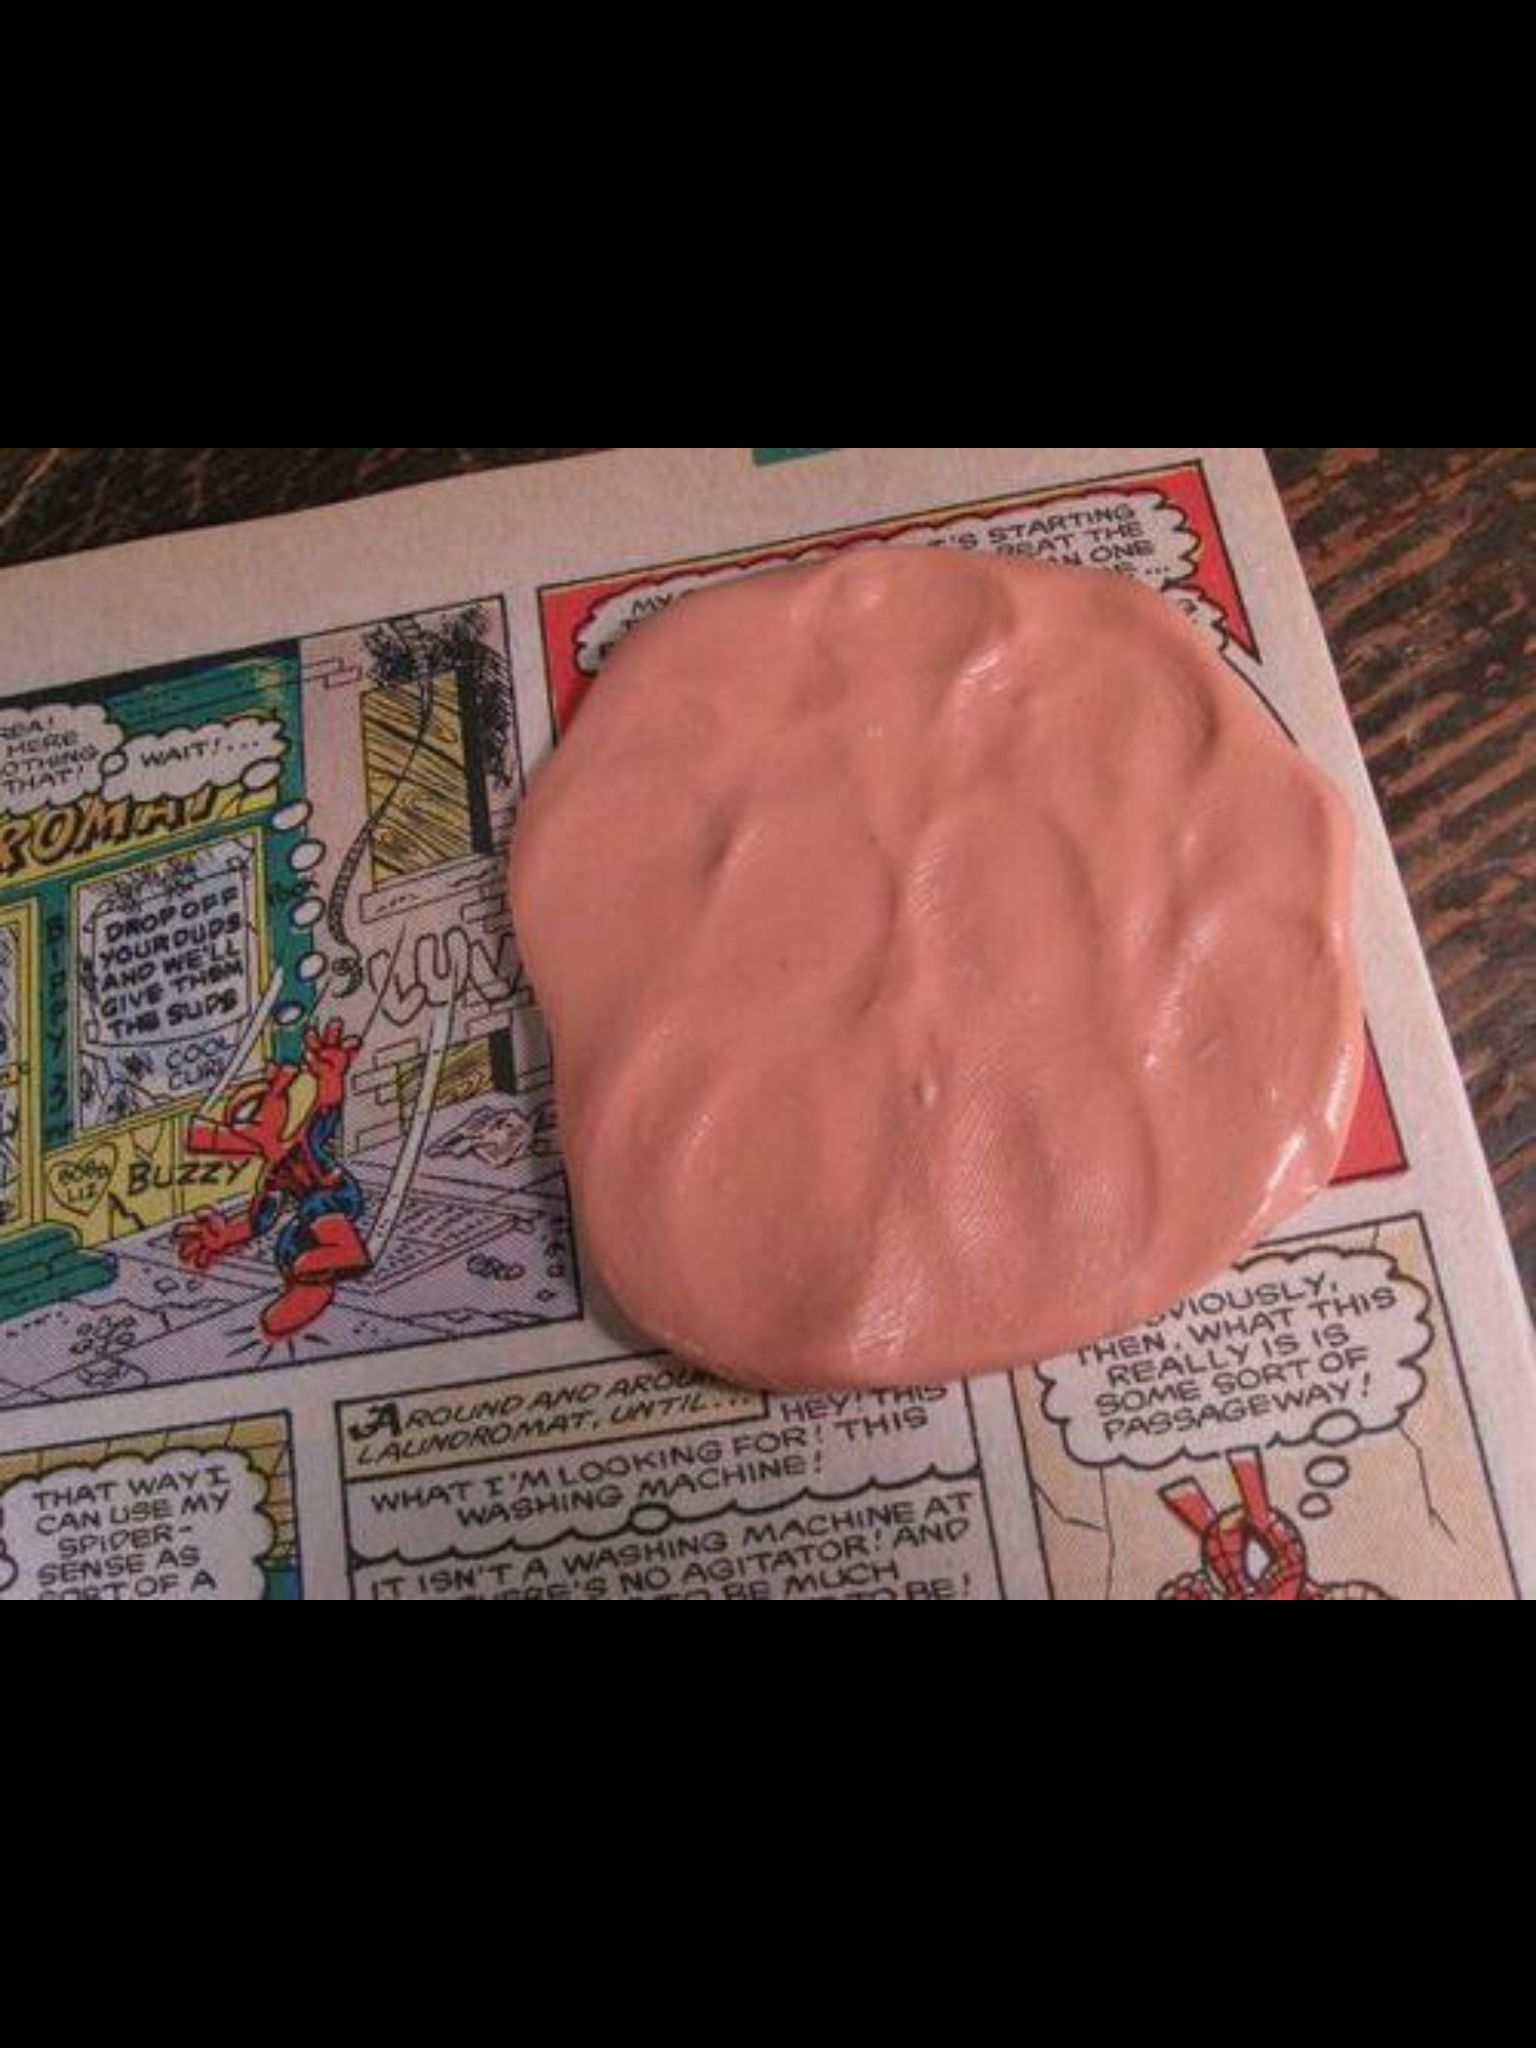 who invented silly putty